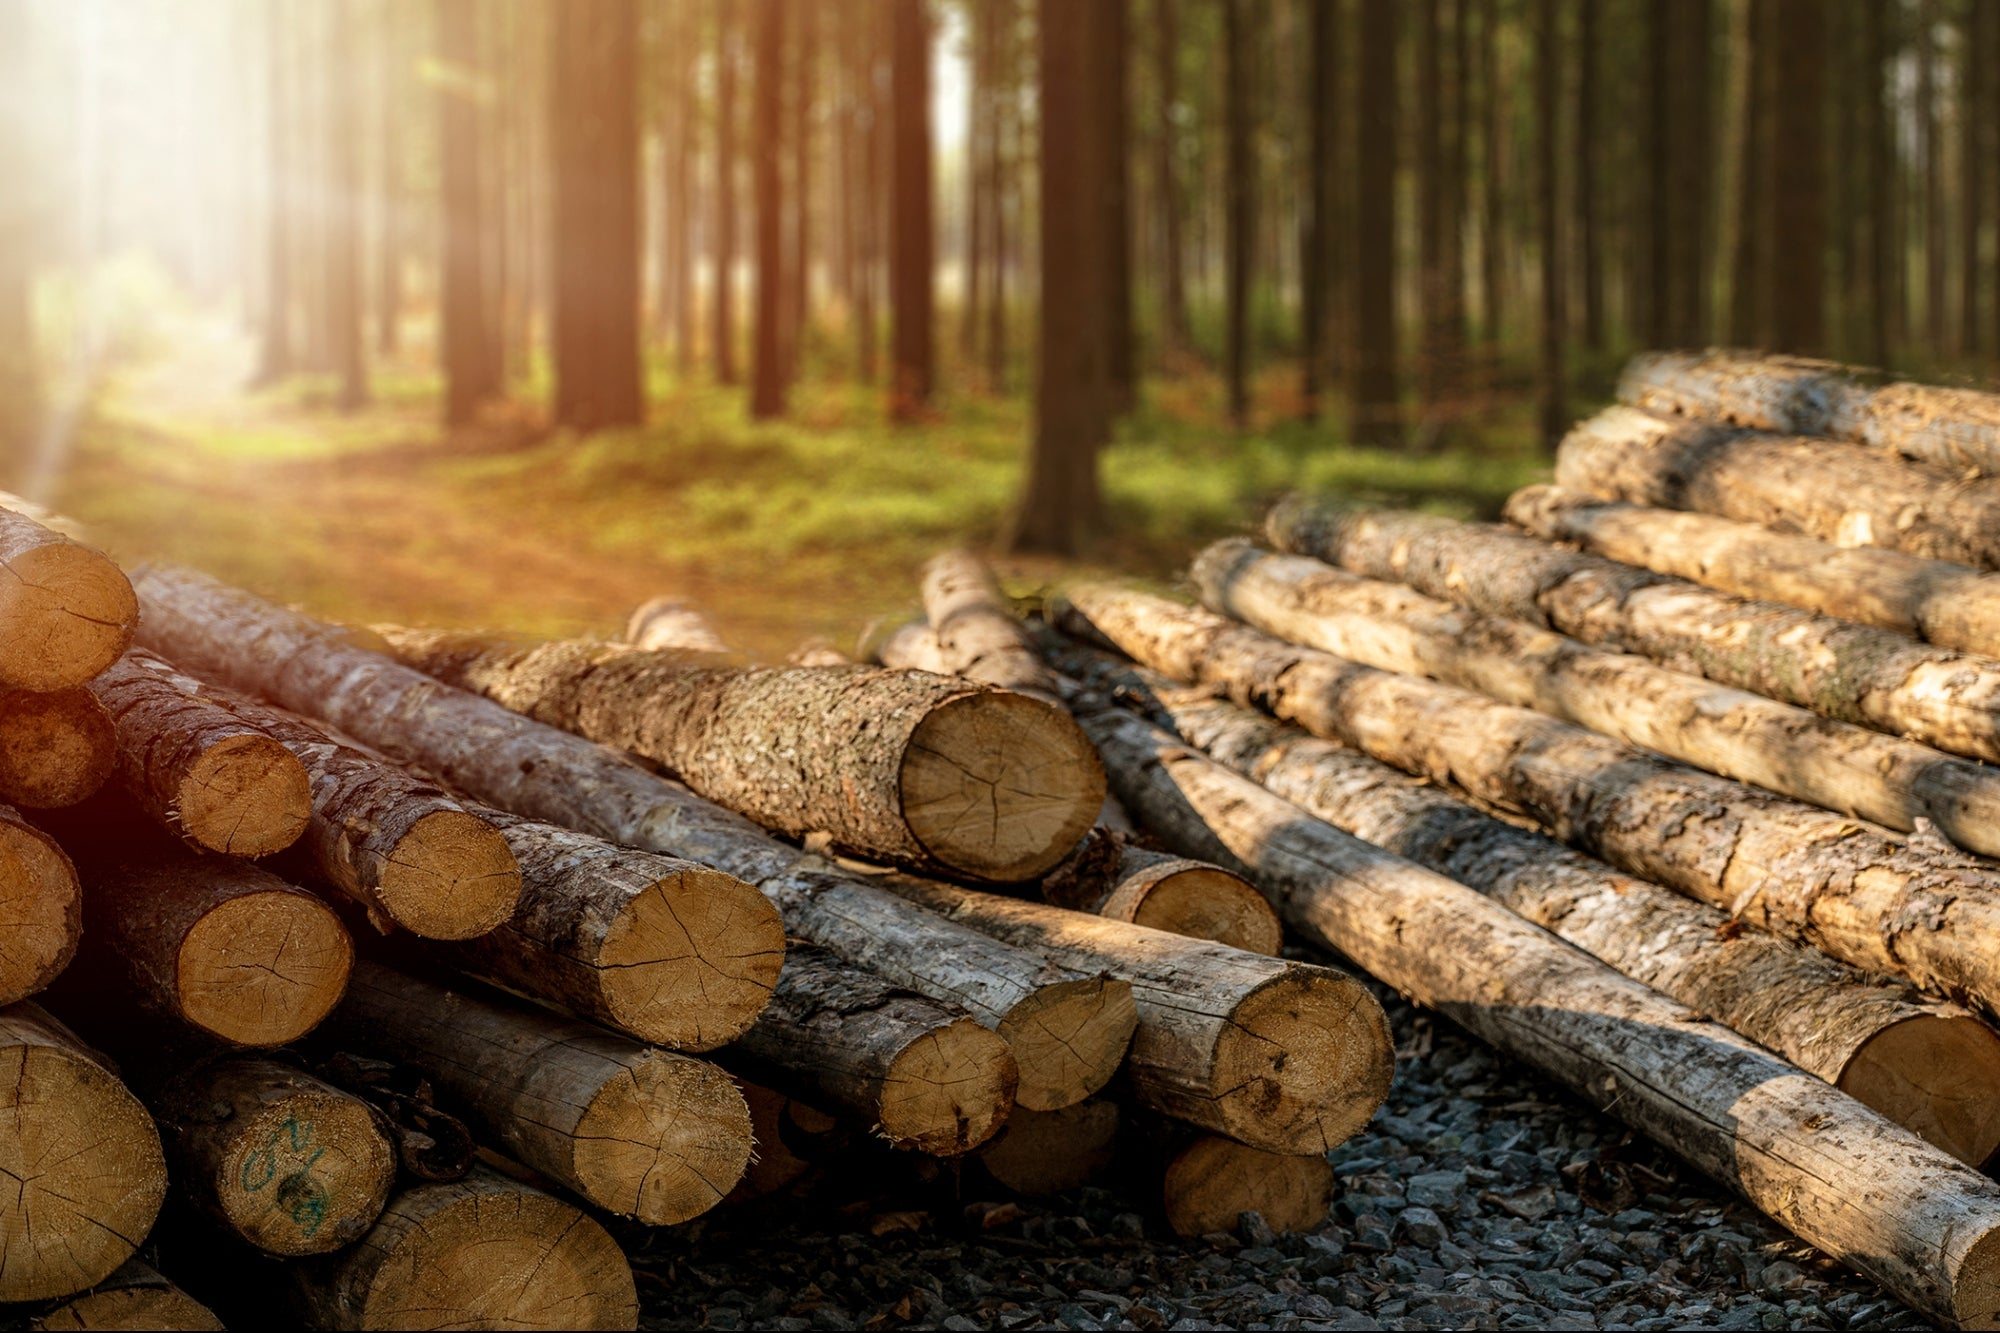 post-image-Exploding Lumber Prices May Be Good News for Hemp